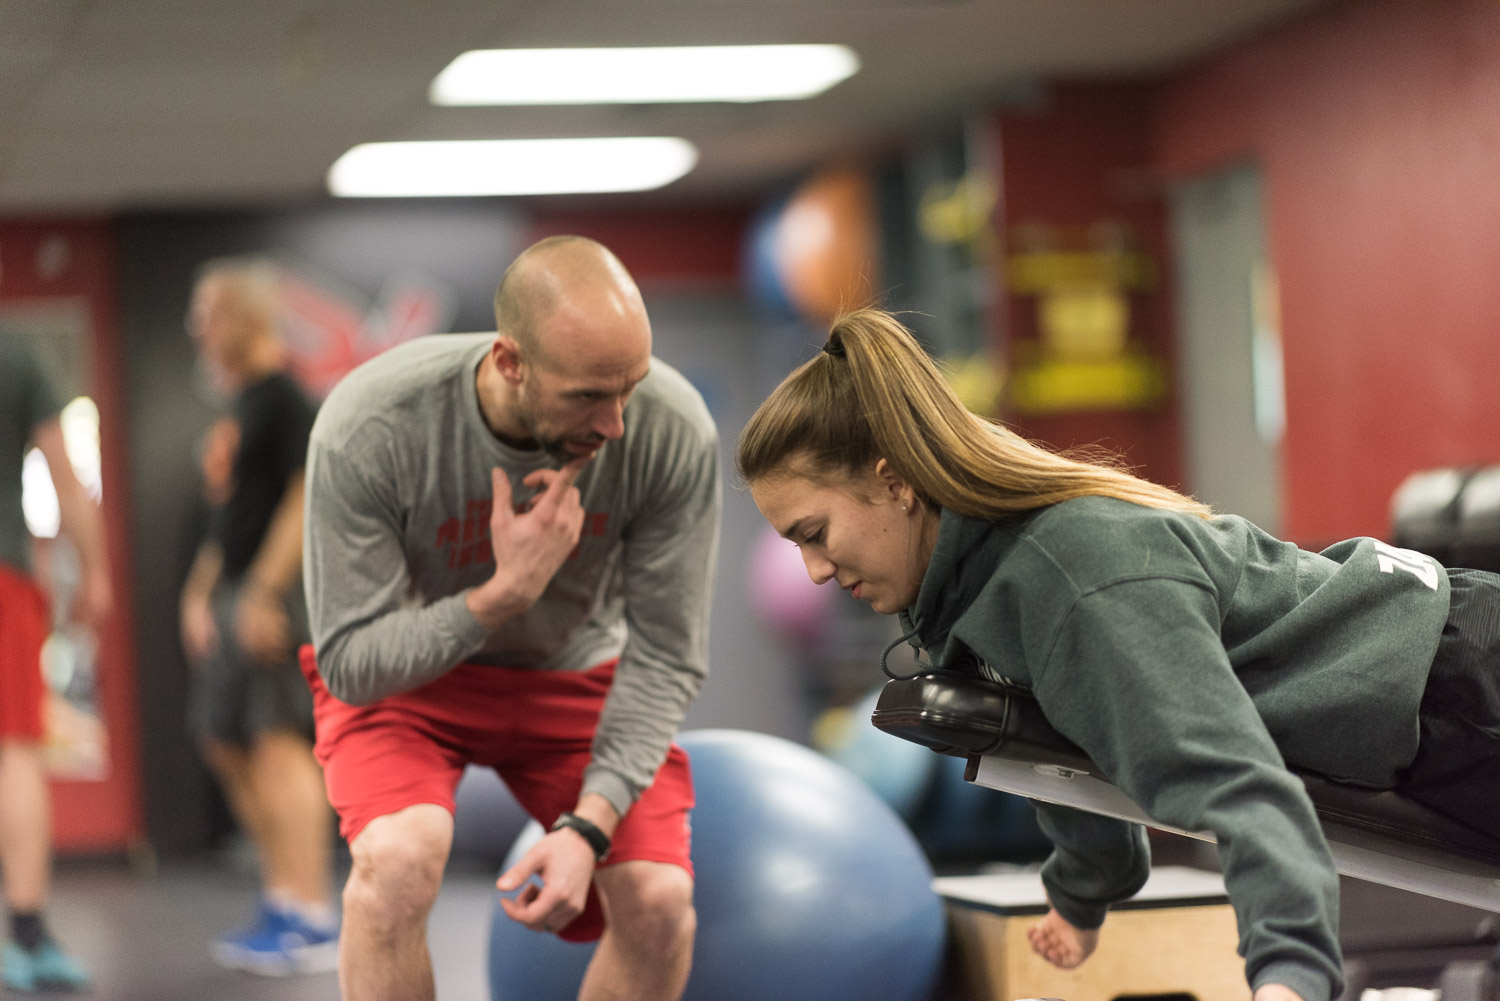 ACTIVE REHABILITATION   Whether you have a sports injury, motor vehicle injury or other pain, you will heal faster with our Active Rehabilitation programs. Our on-staff Kinesiologists will tailor a treatment plan to help you feel great, faster!